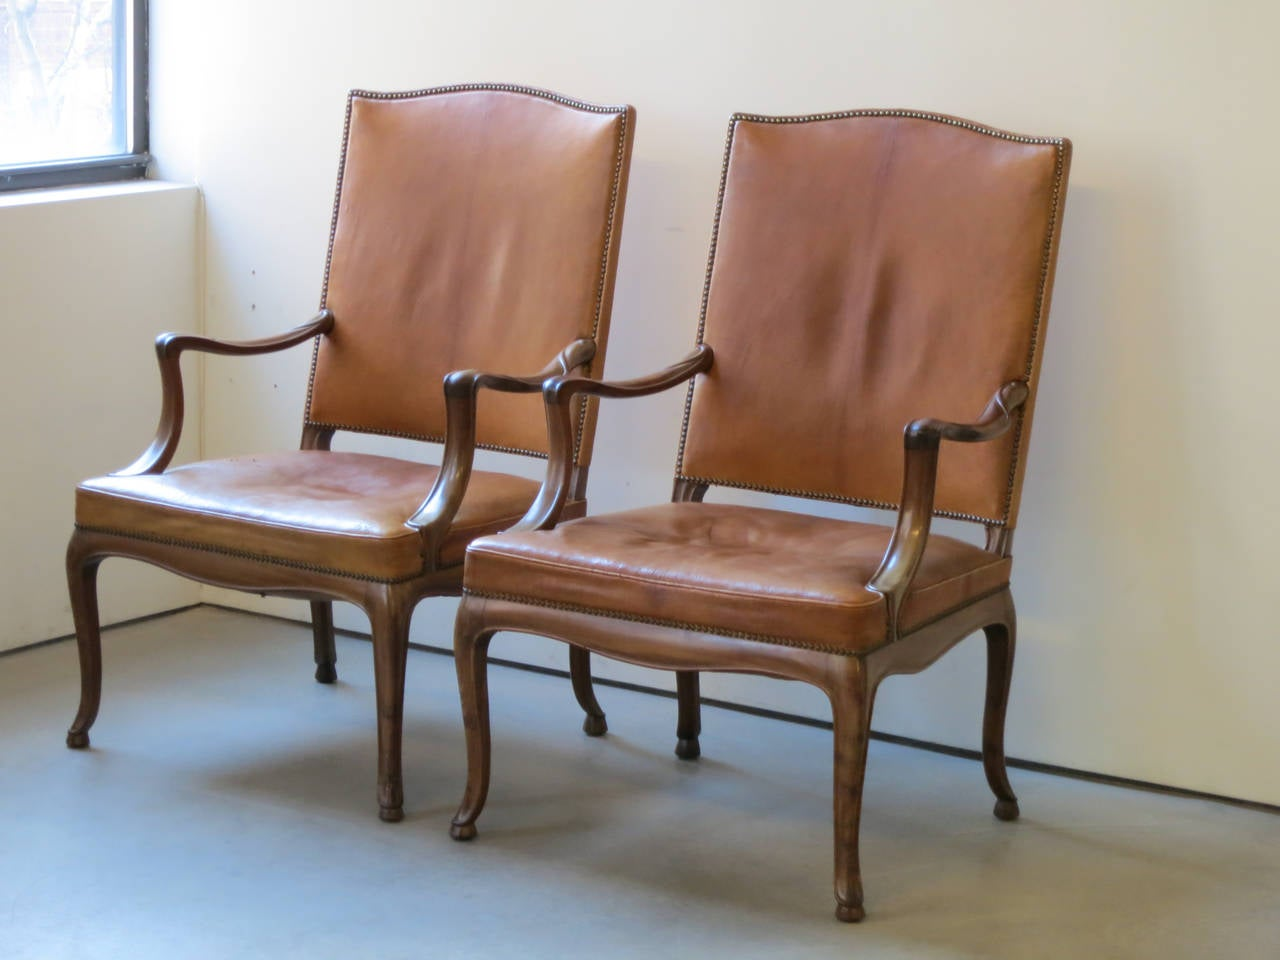 Frits Henningsen Four Large 1930s Armchairs in Danish Rococo Style For Sale 2